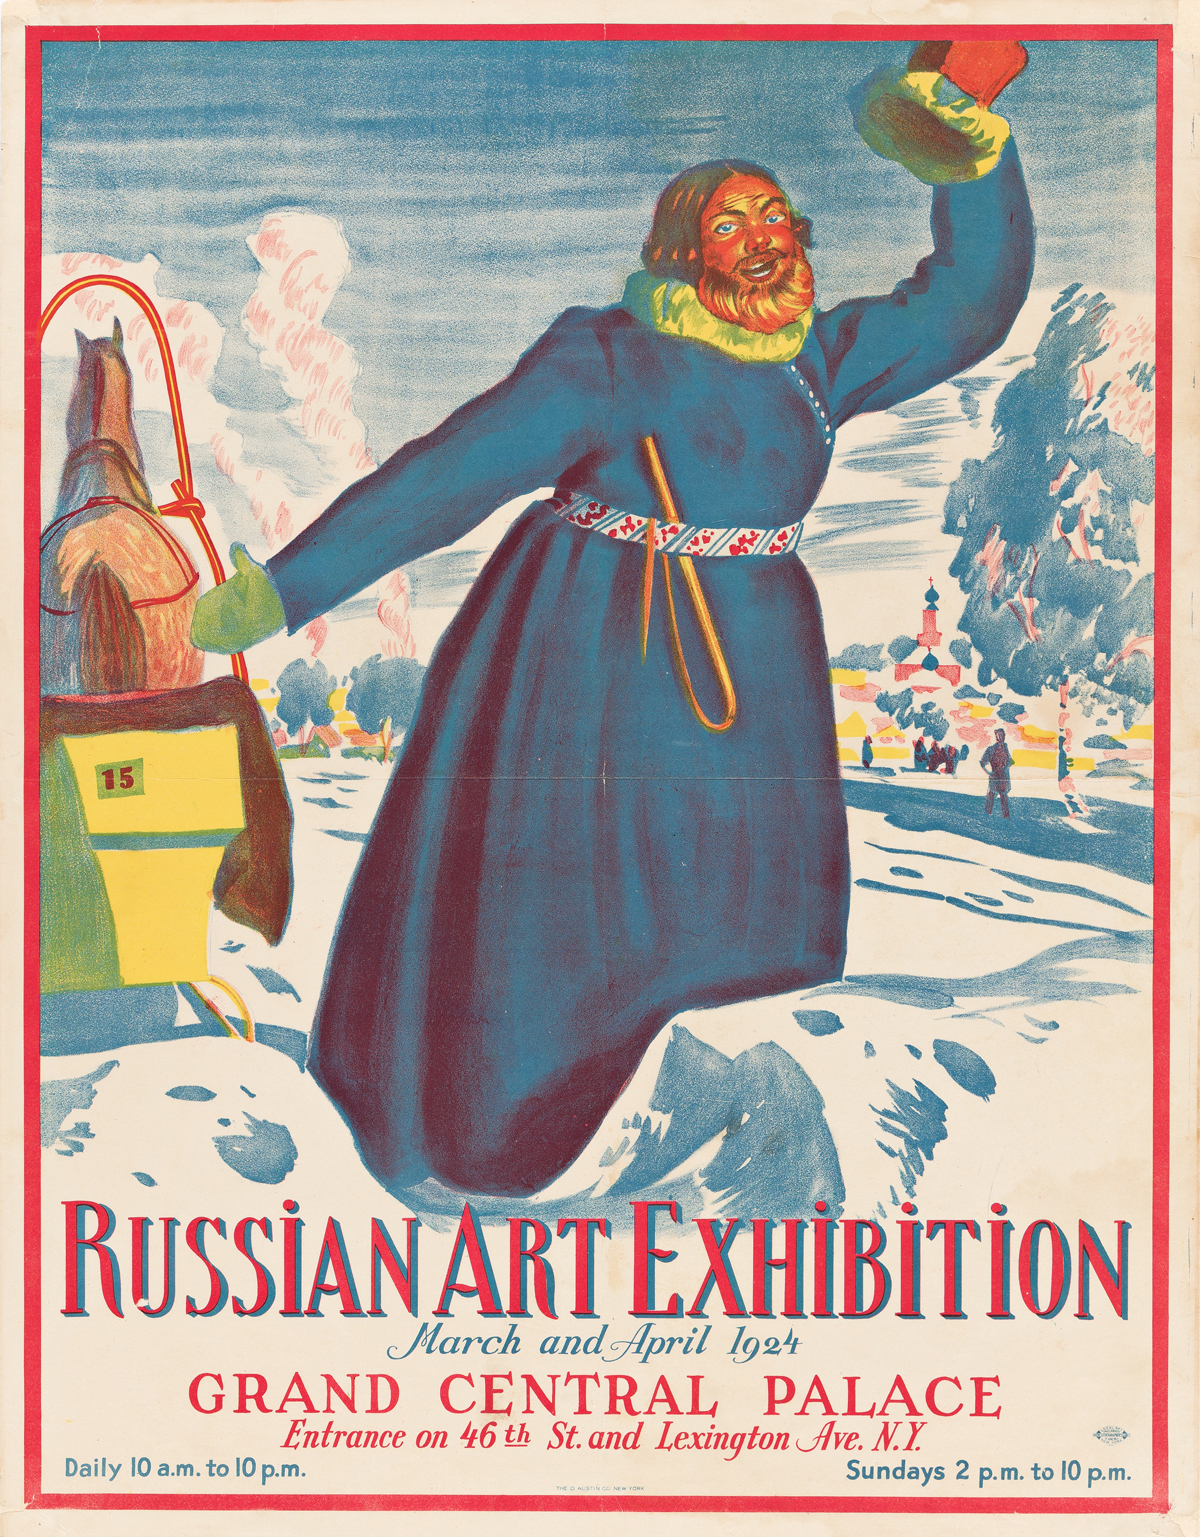 BORIS KUSTODIEV (1878-1927).  RUSSIAN ART EXHIBITION / GRAND CENTRAL PALACE. 1924. 28x22 inches, 71x56 cm. The O. Austin Co., New York.